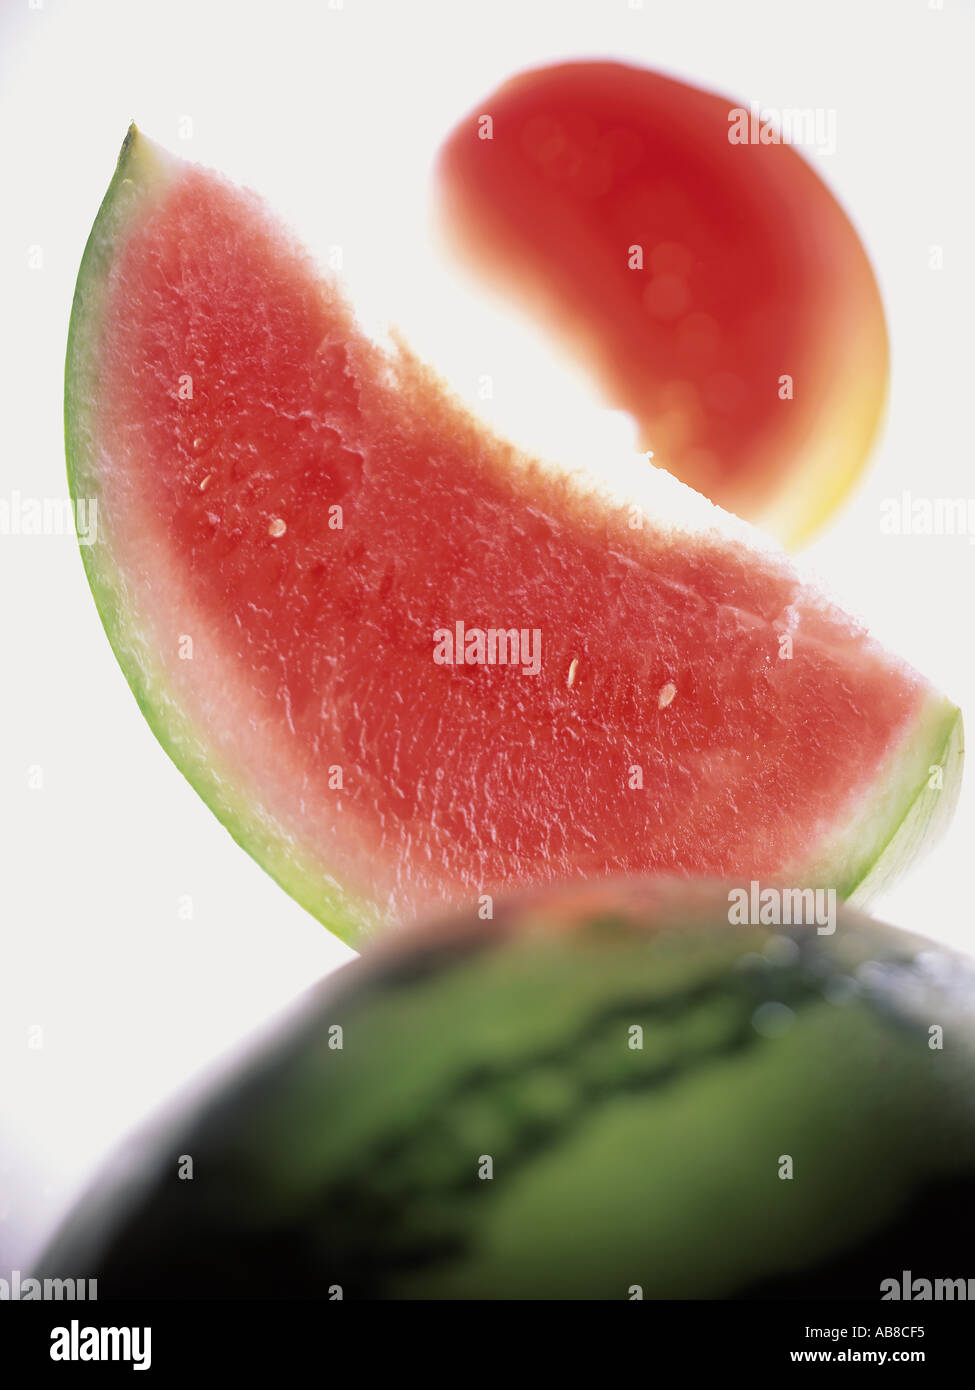 Water melon - Stock Image